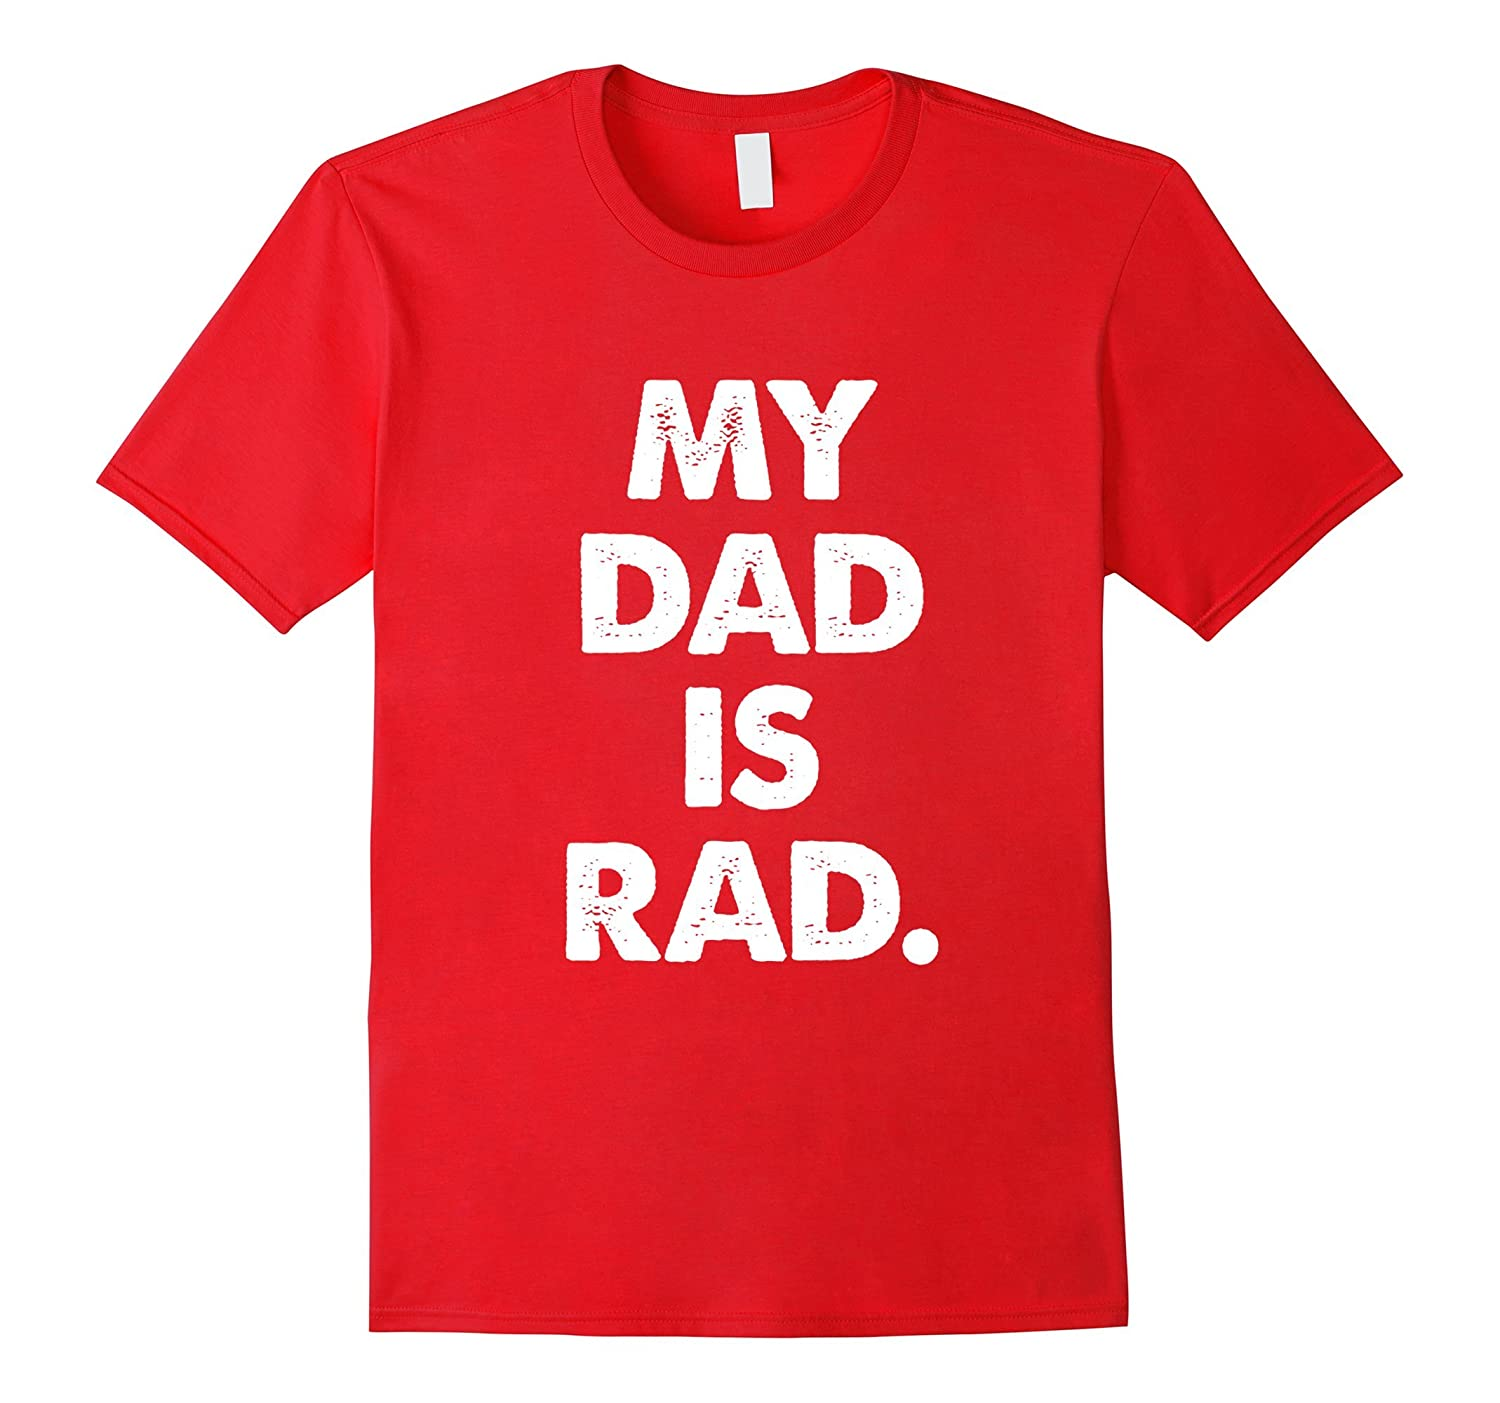 My Dad is Rad – Awesome Kids T-Shirt